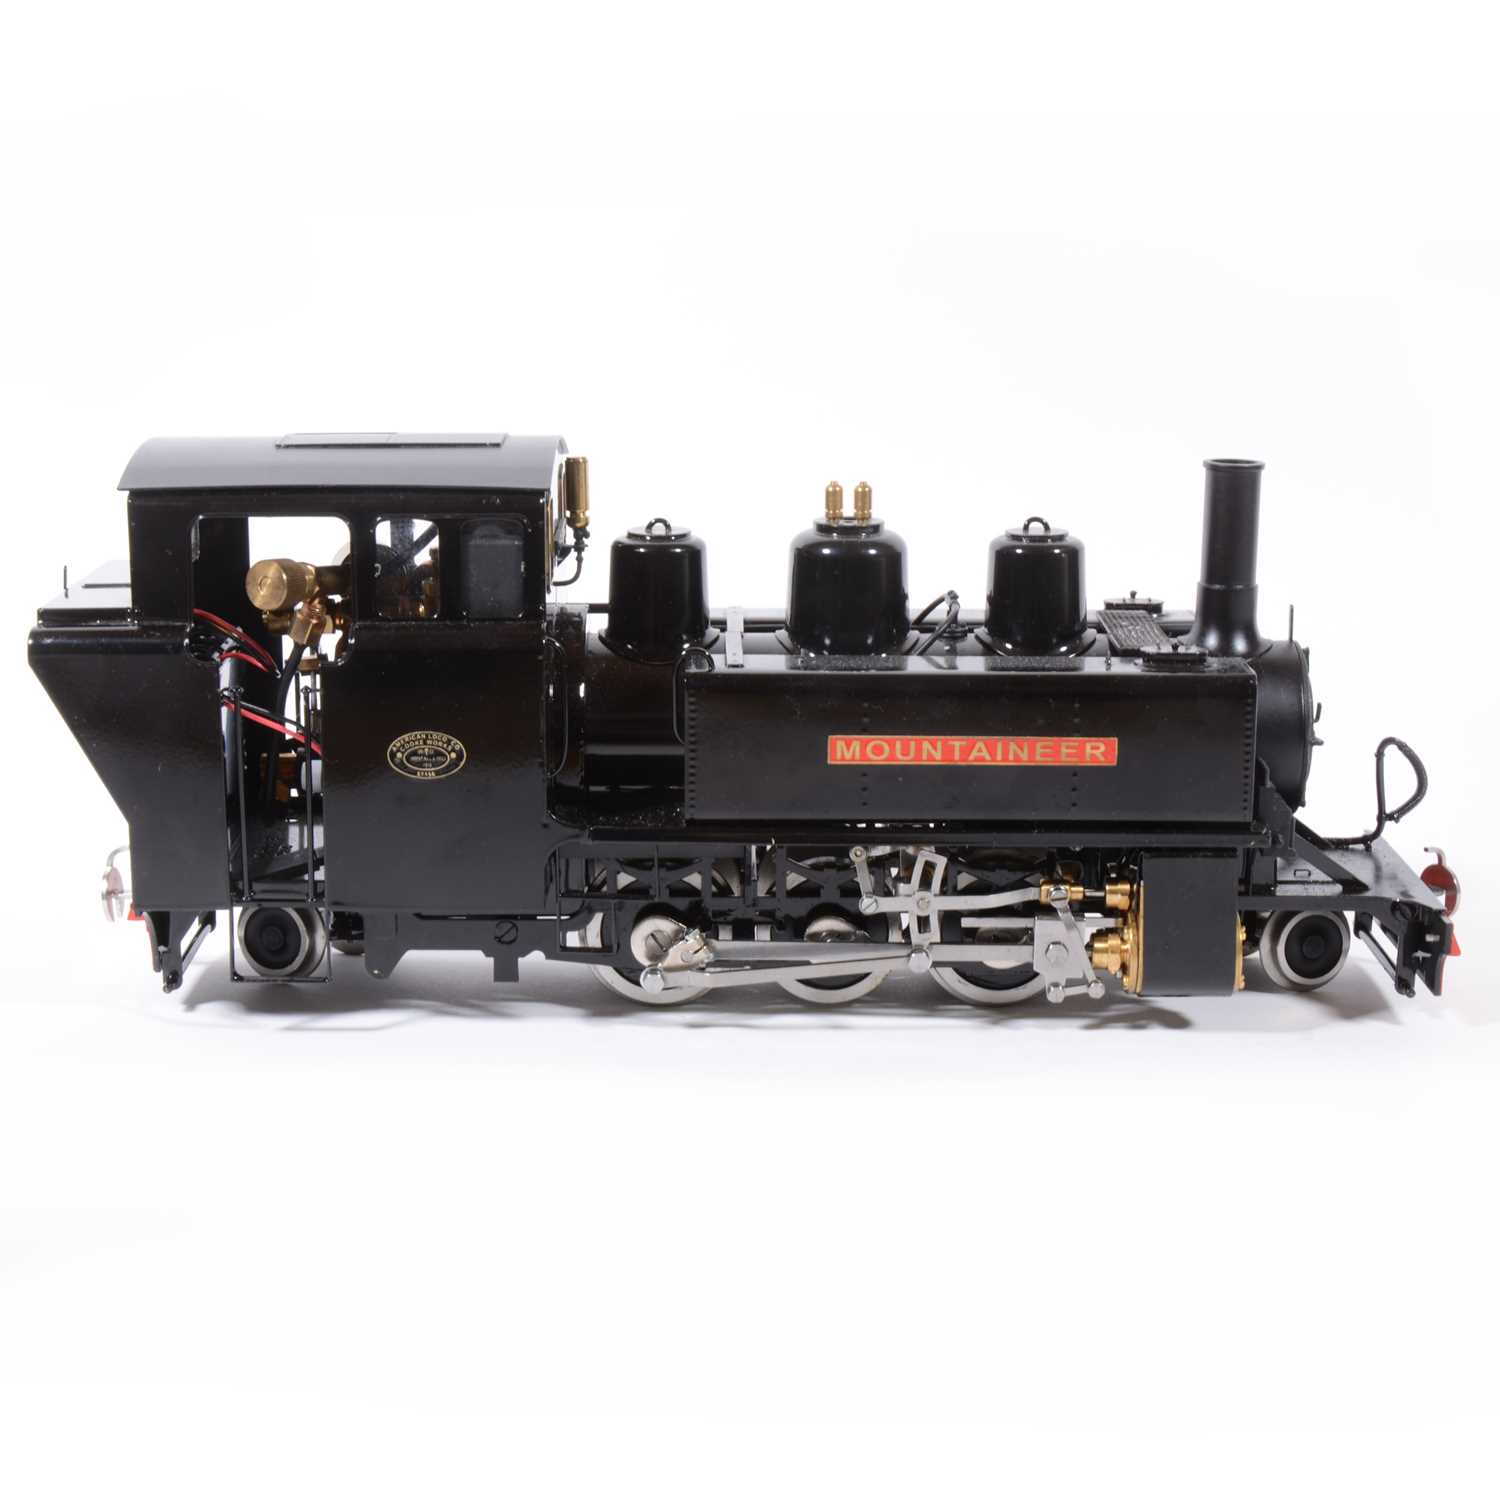 Lot 6-Roundhouse live steam, gauge 1 / G scale, 45mm locomotive, 'Mountaineer' 2-6-2 black, with instructions, with RC